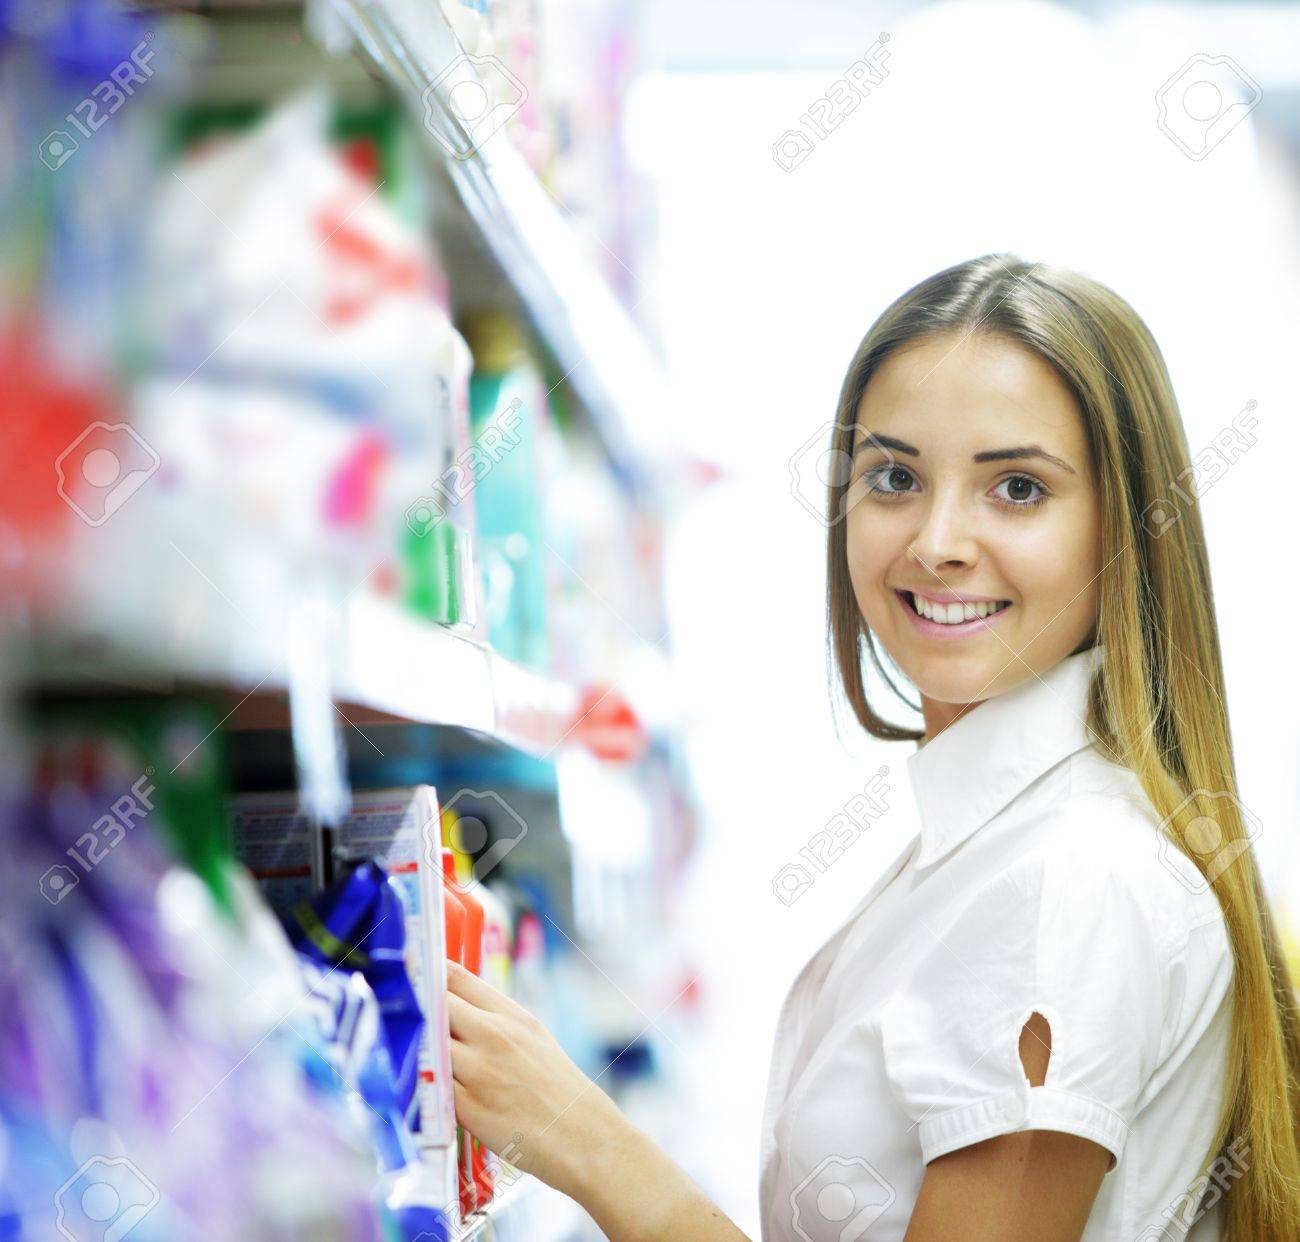 Smiling woman in a Grocery Store Stock Photo - 15472254